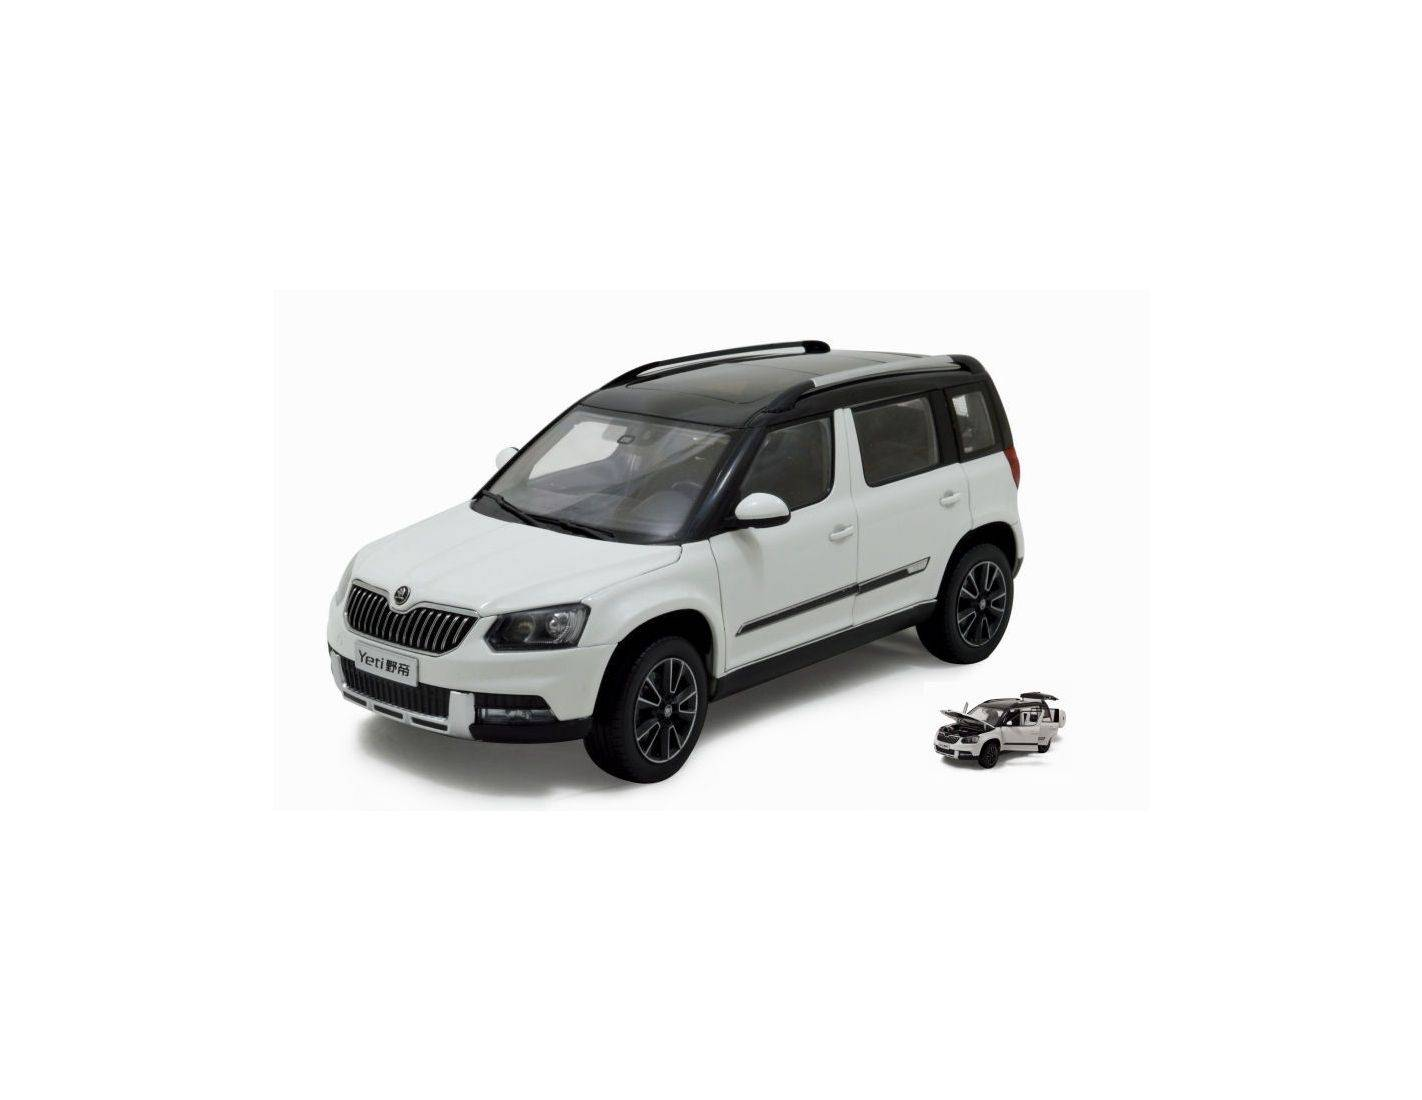 paudi model pd2309w skoda yeti 2013 white 1 18 modellino. Black Bedroom Furniture Sets. Home Design Ideas